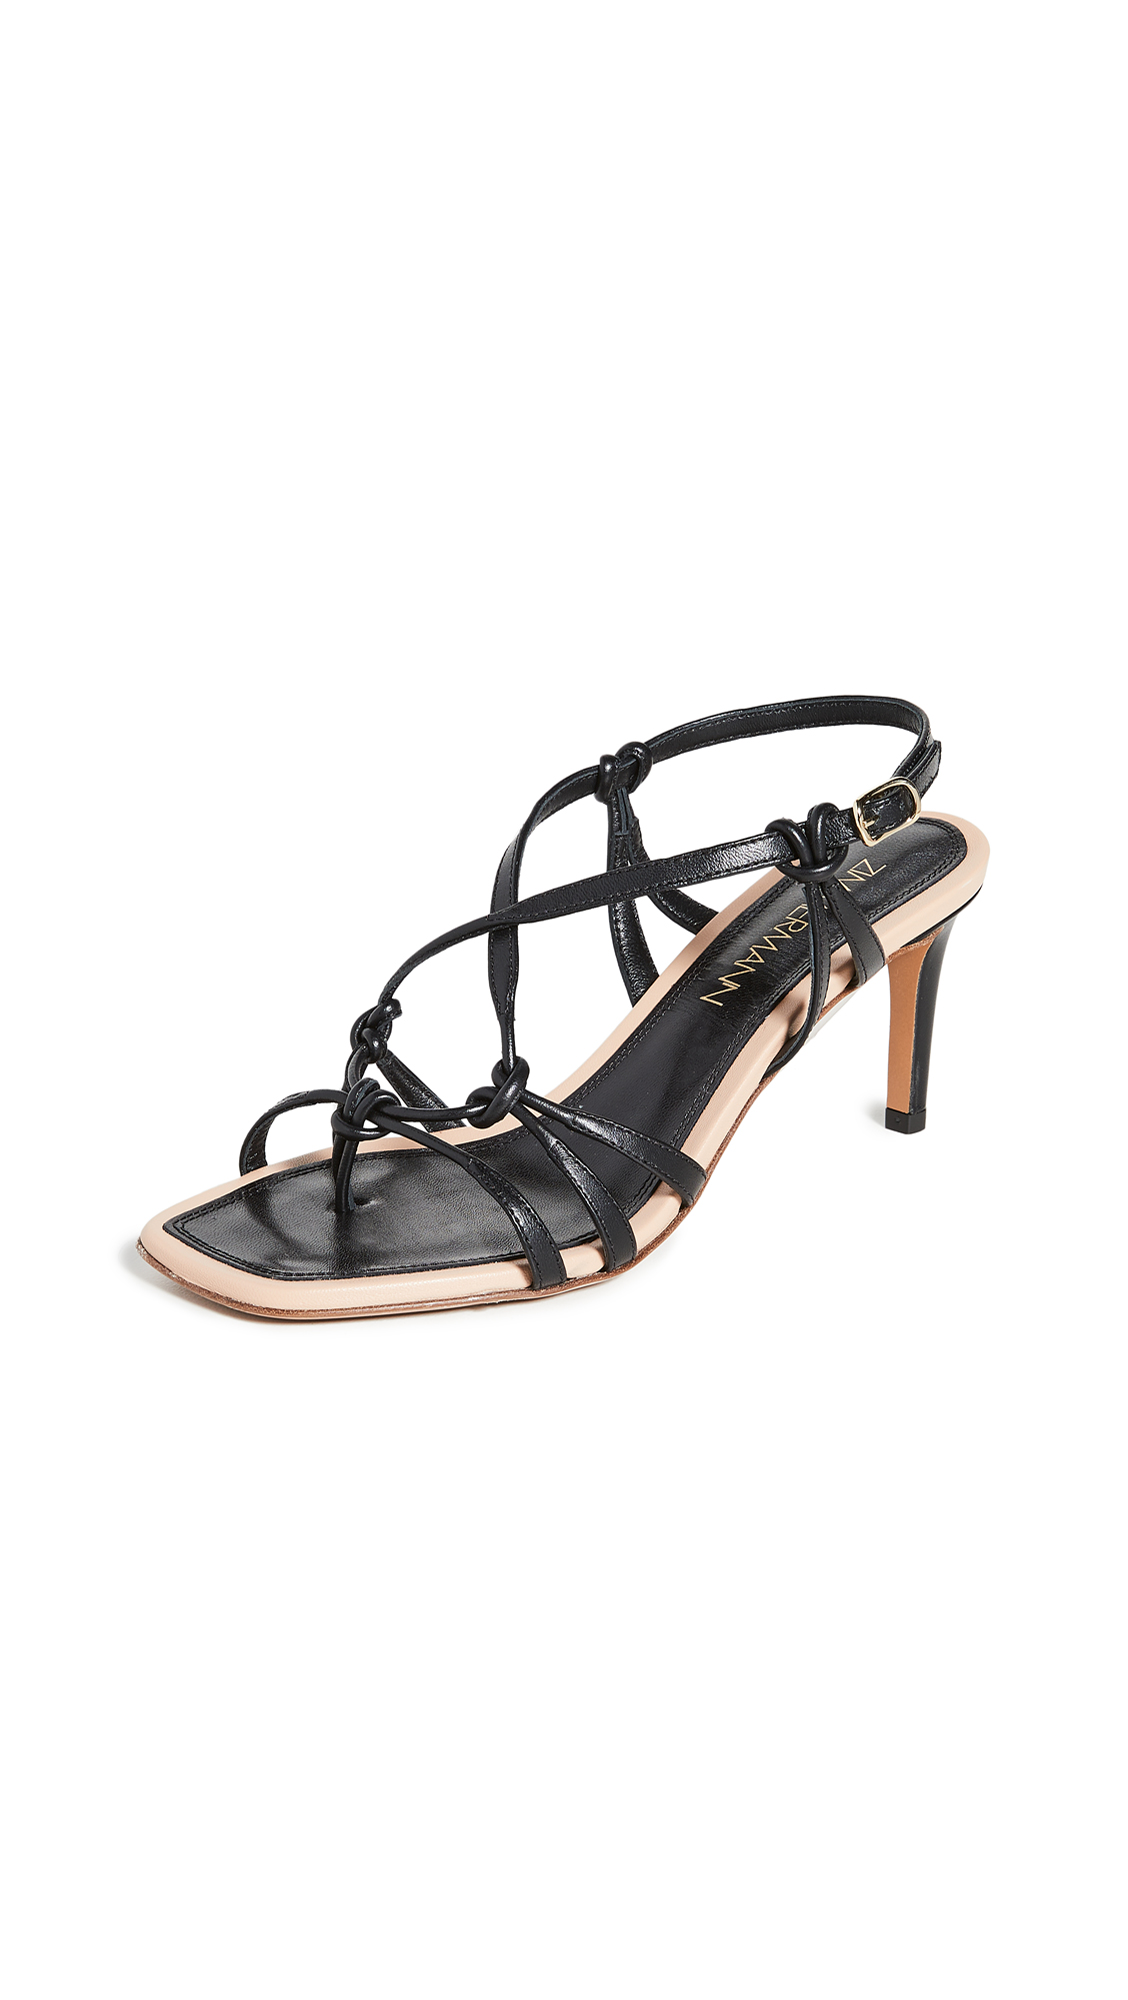 Zimmermann Knotted Strap Heeled Sandals – 50% Off Sale